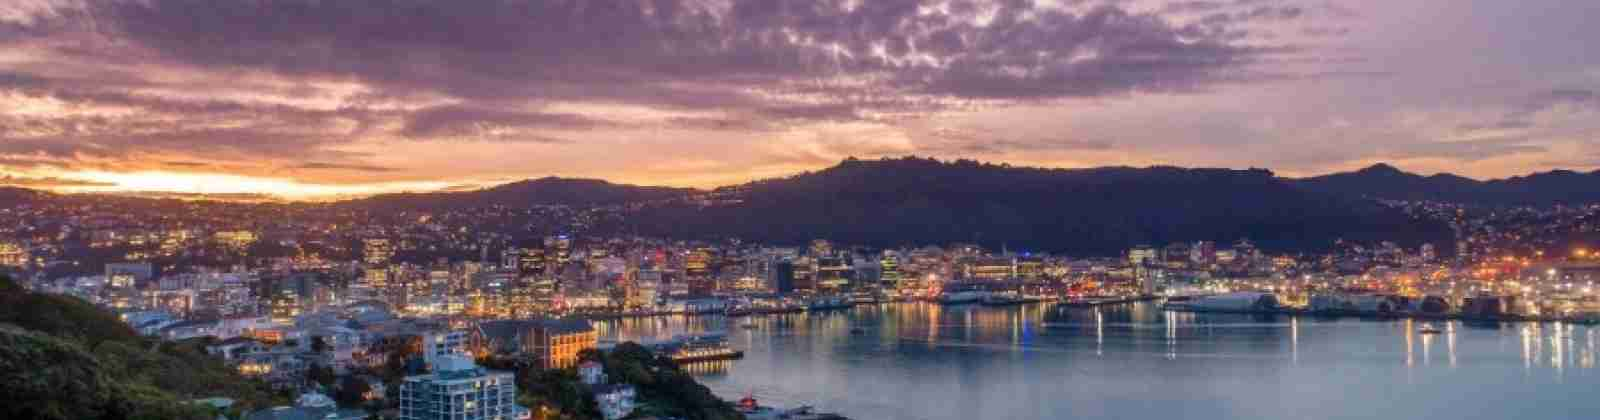 Mt Victoria wellington view sunset